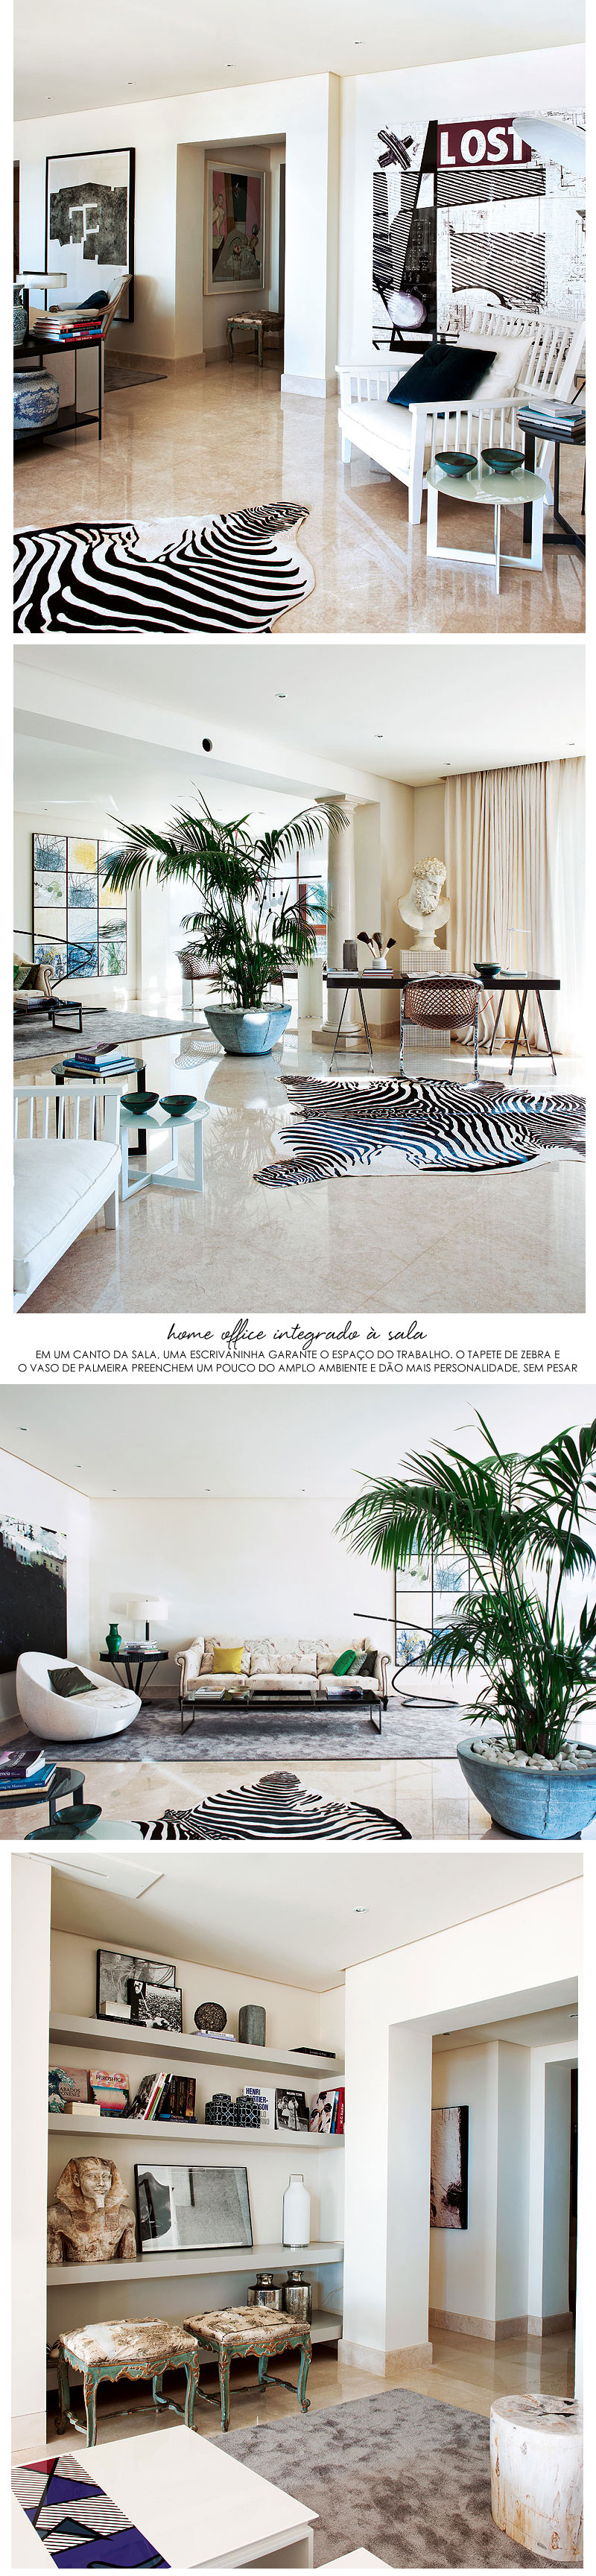 living-gazette-barbara-resende-decor-tour-casa-praia-contemporanea-classica-home-office